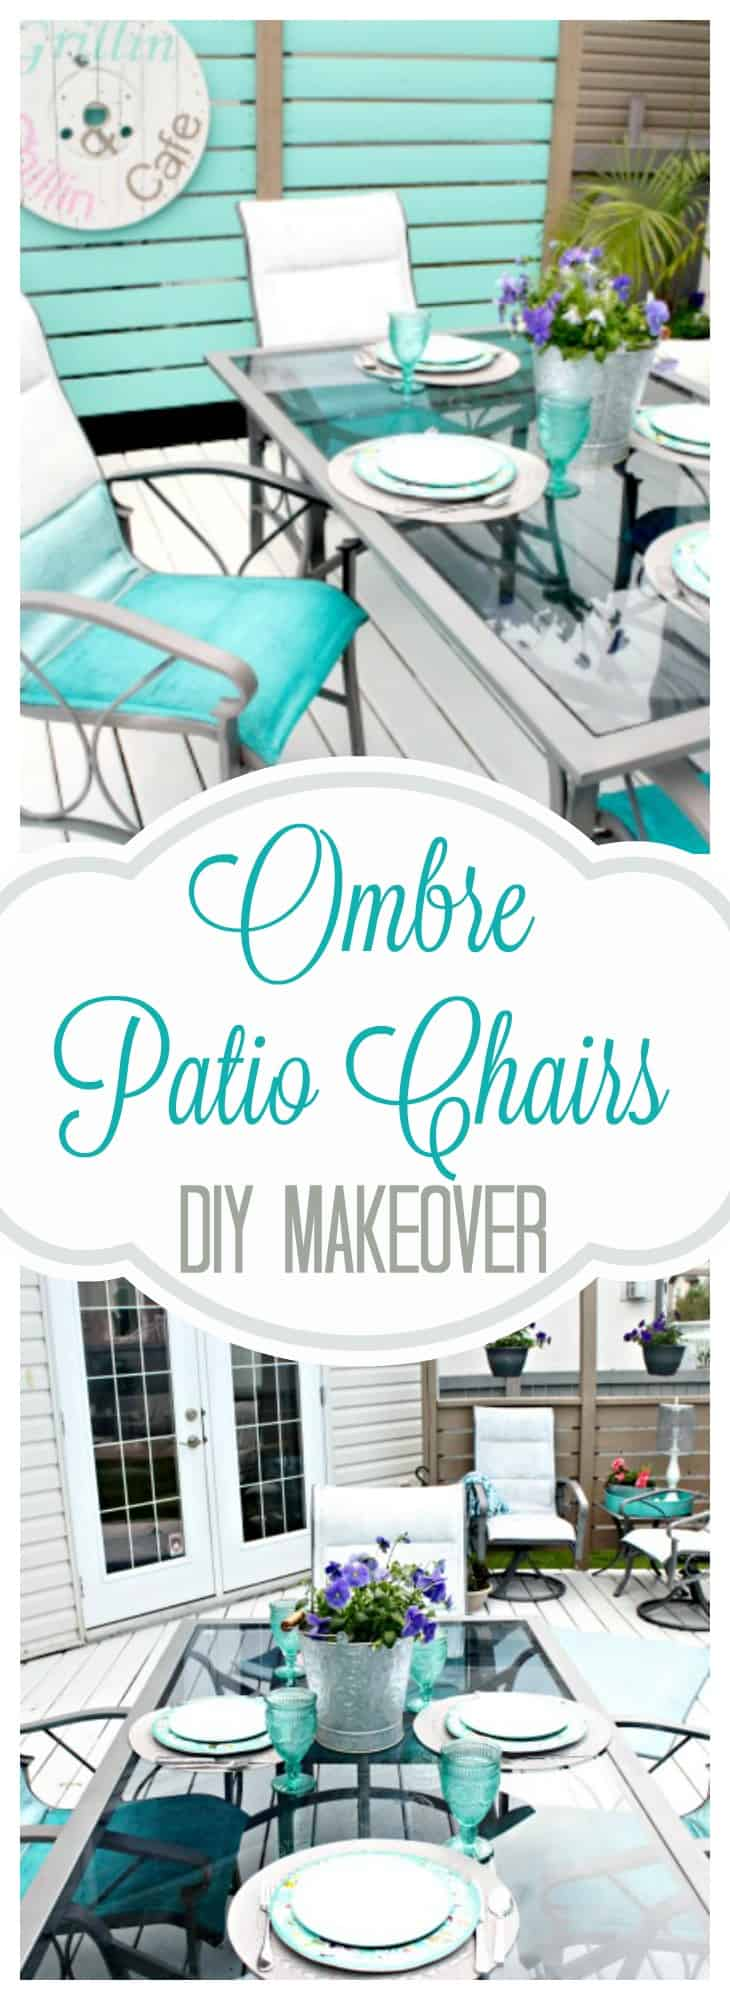 chalk paint fabric, chalk paint akeovers, refinishing furniture with chalk paint , chalk paint outside furniture.